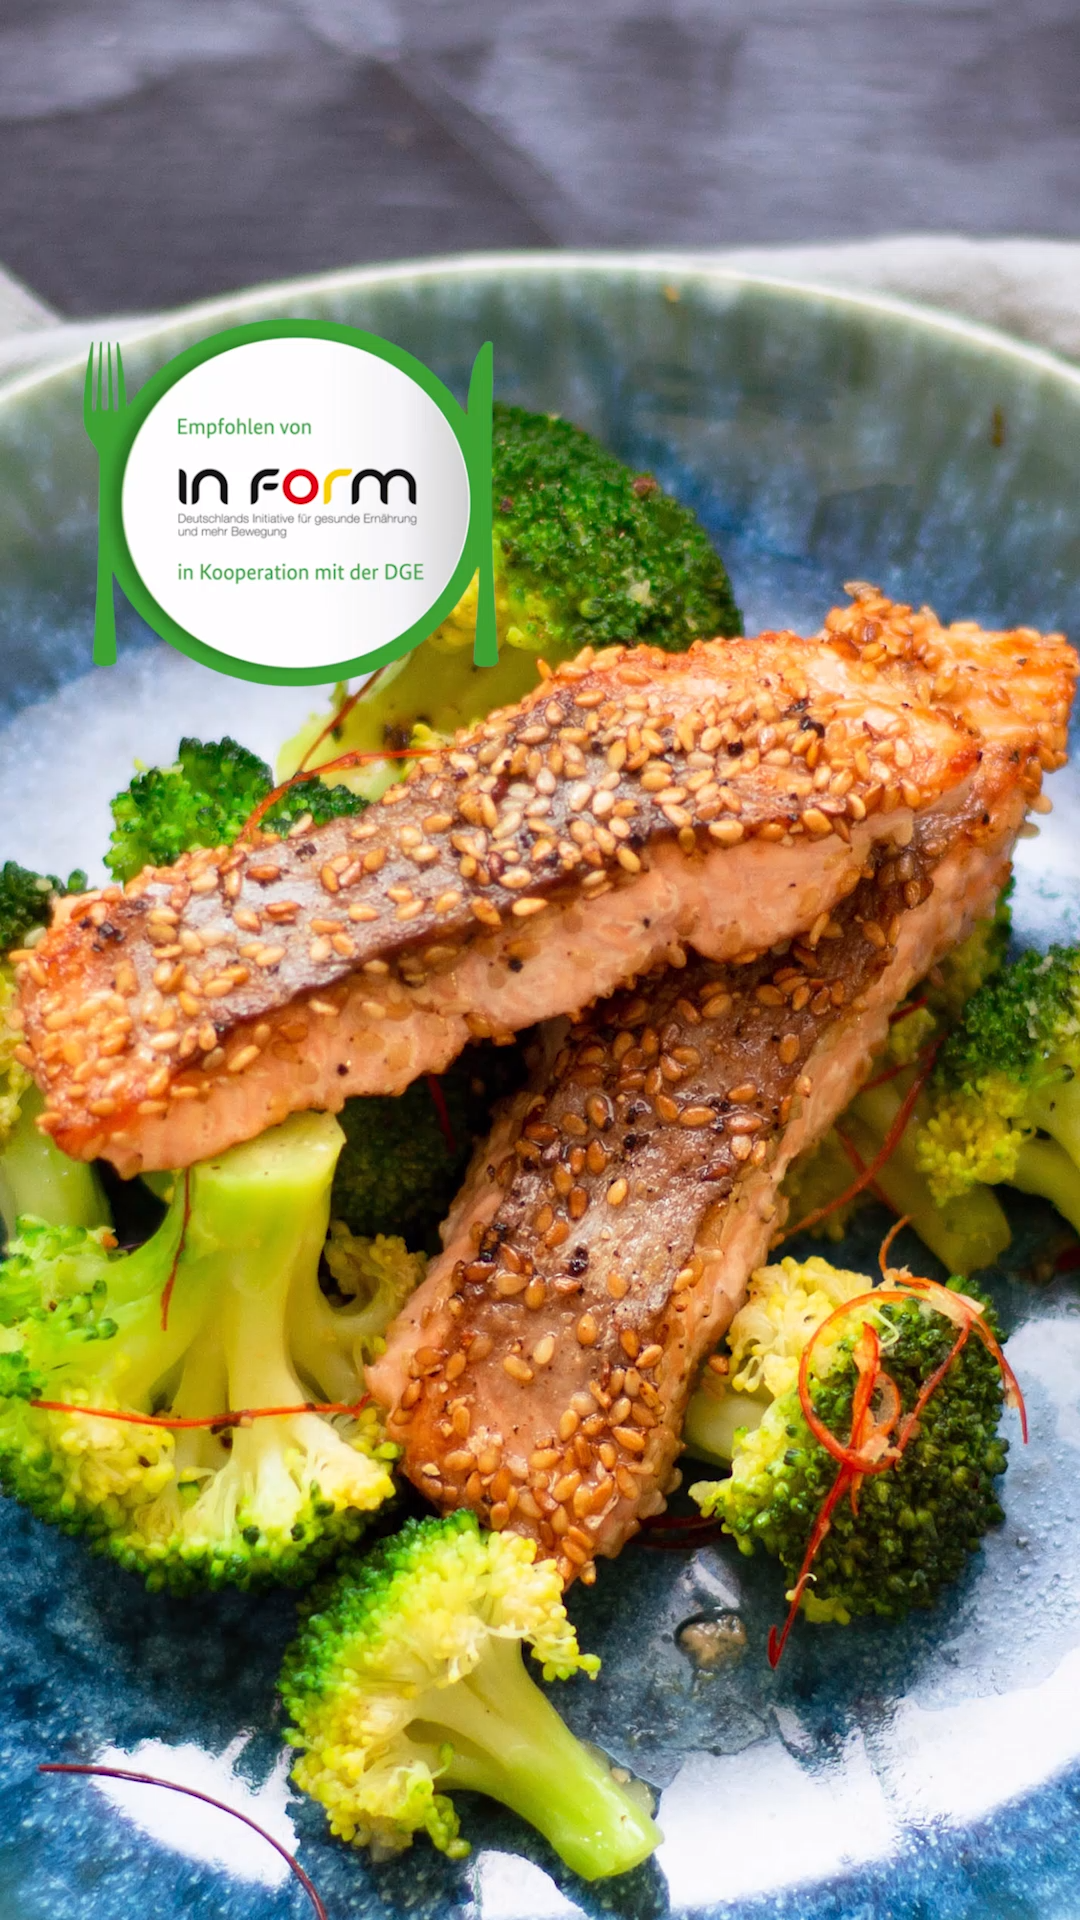 Photo of Salmon with sesame crust and broccoli